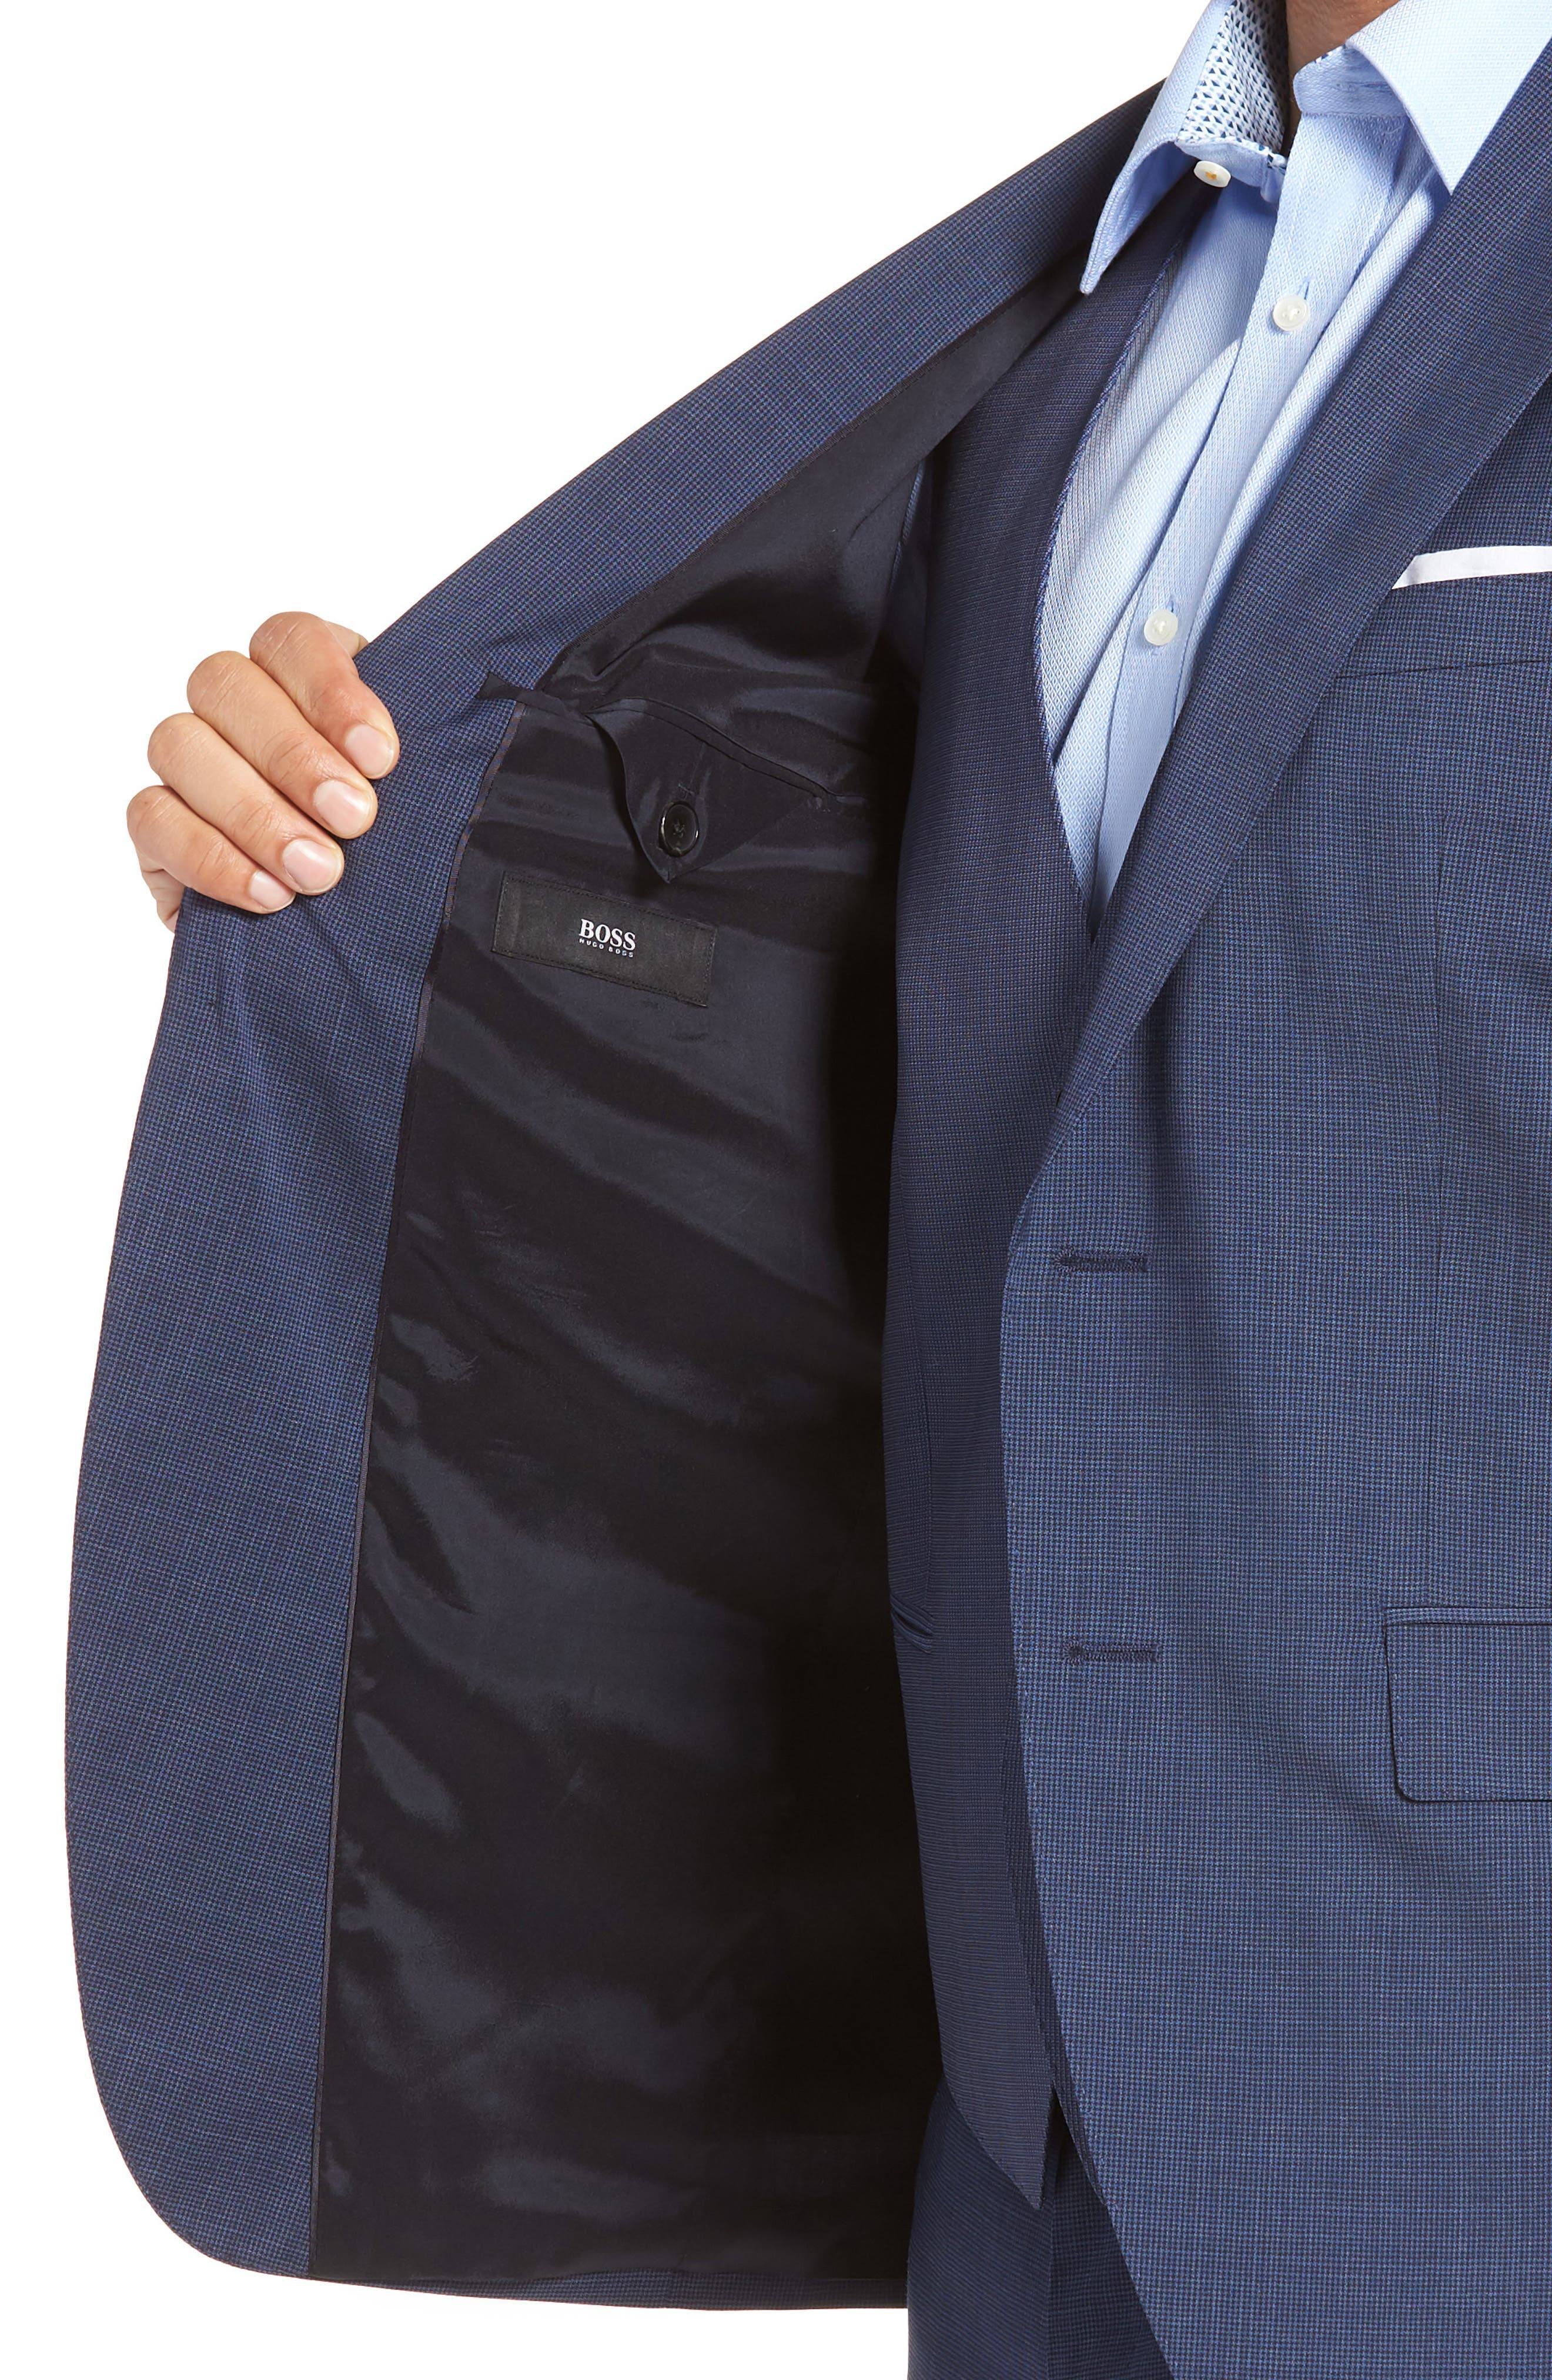 Johnstons/Lenon Classic Fit Houndstooth Wool Suit,                             Alternate thumbnail 5, color,                             BLUE